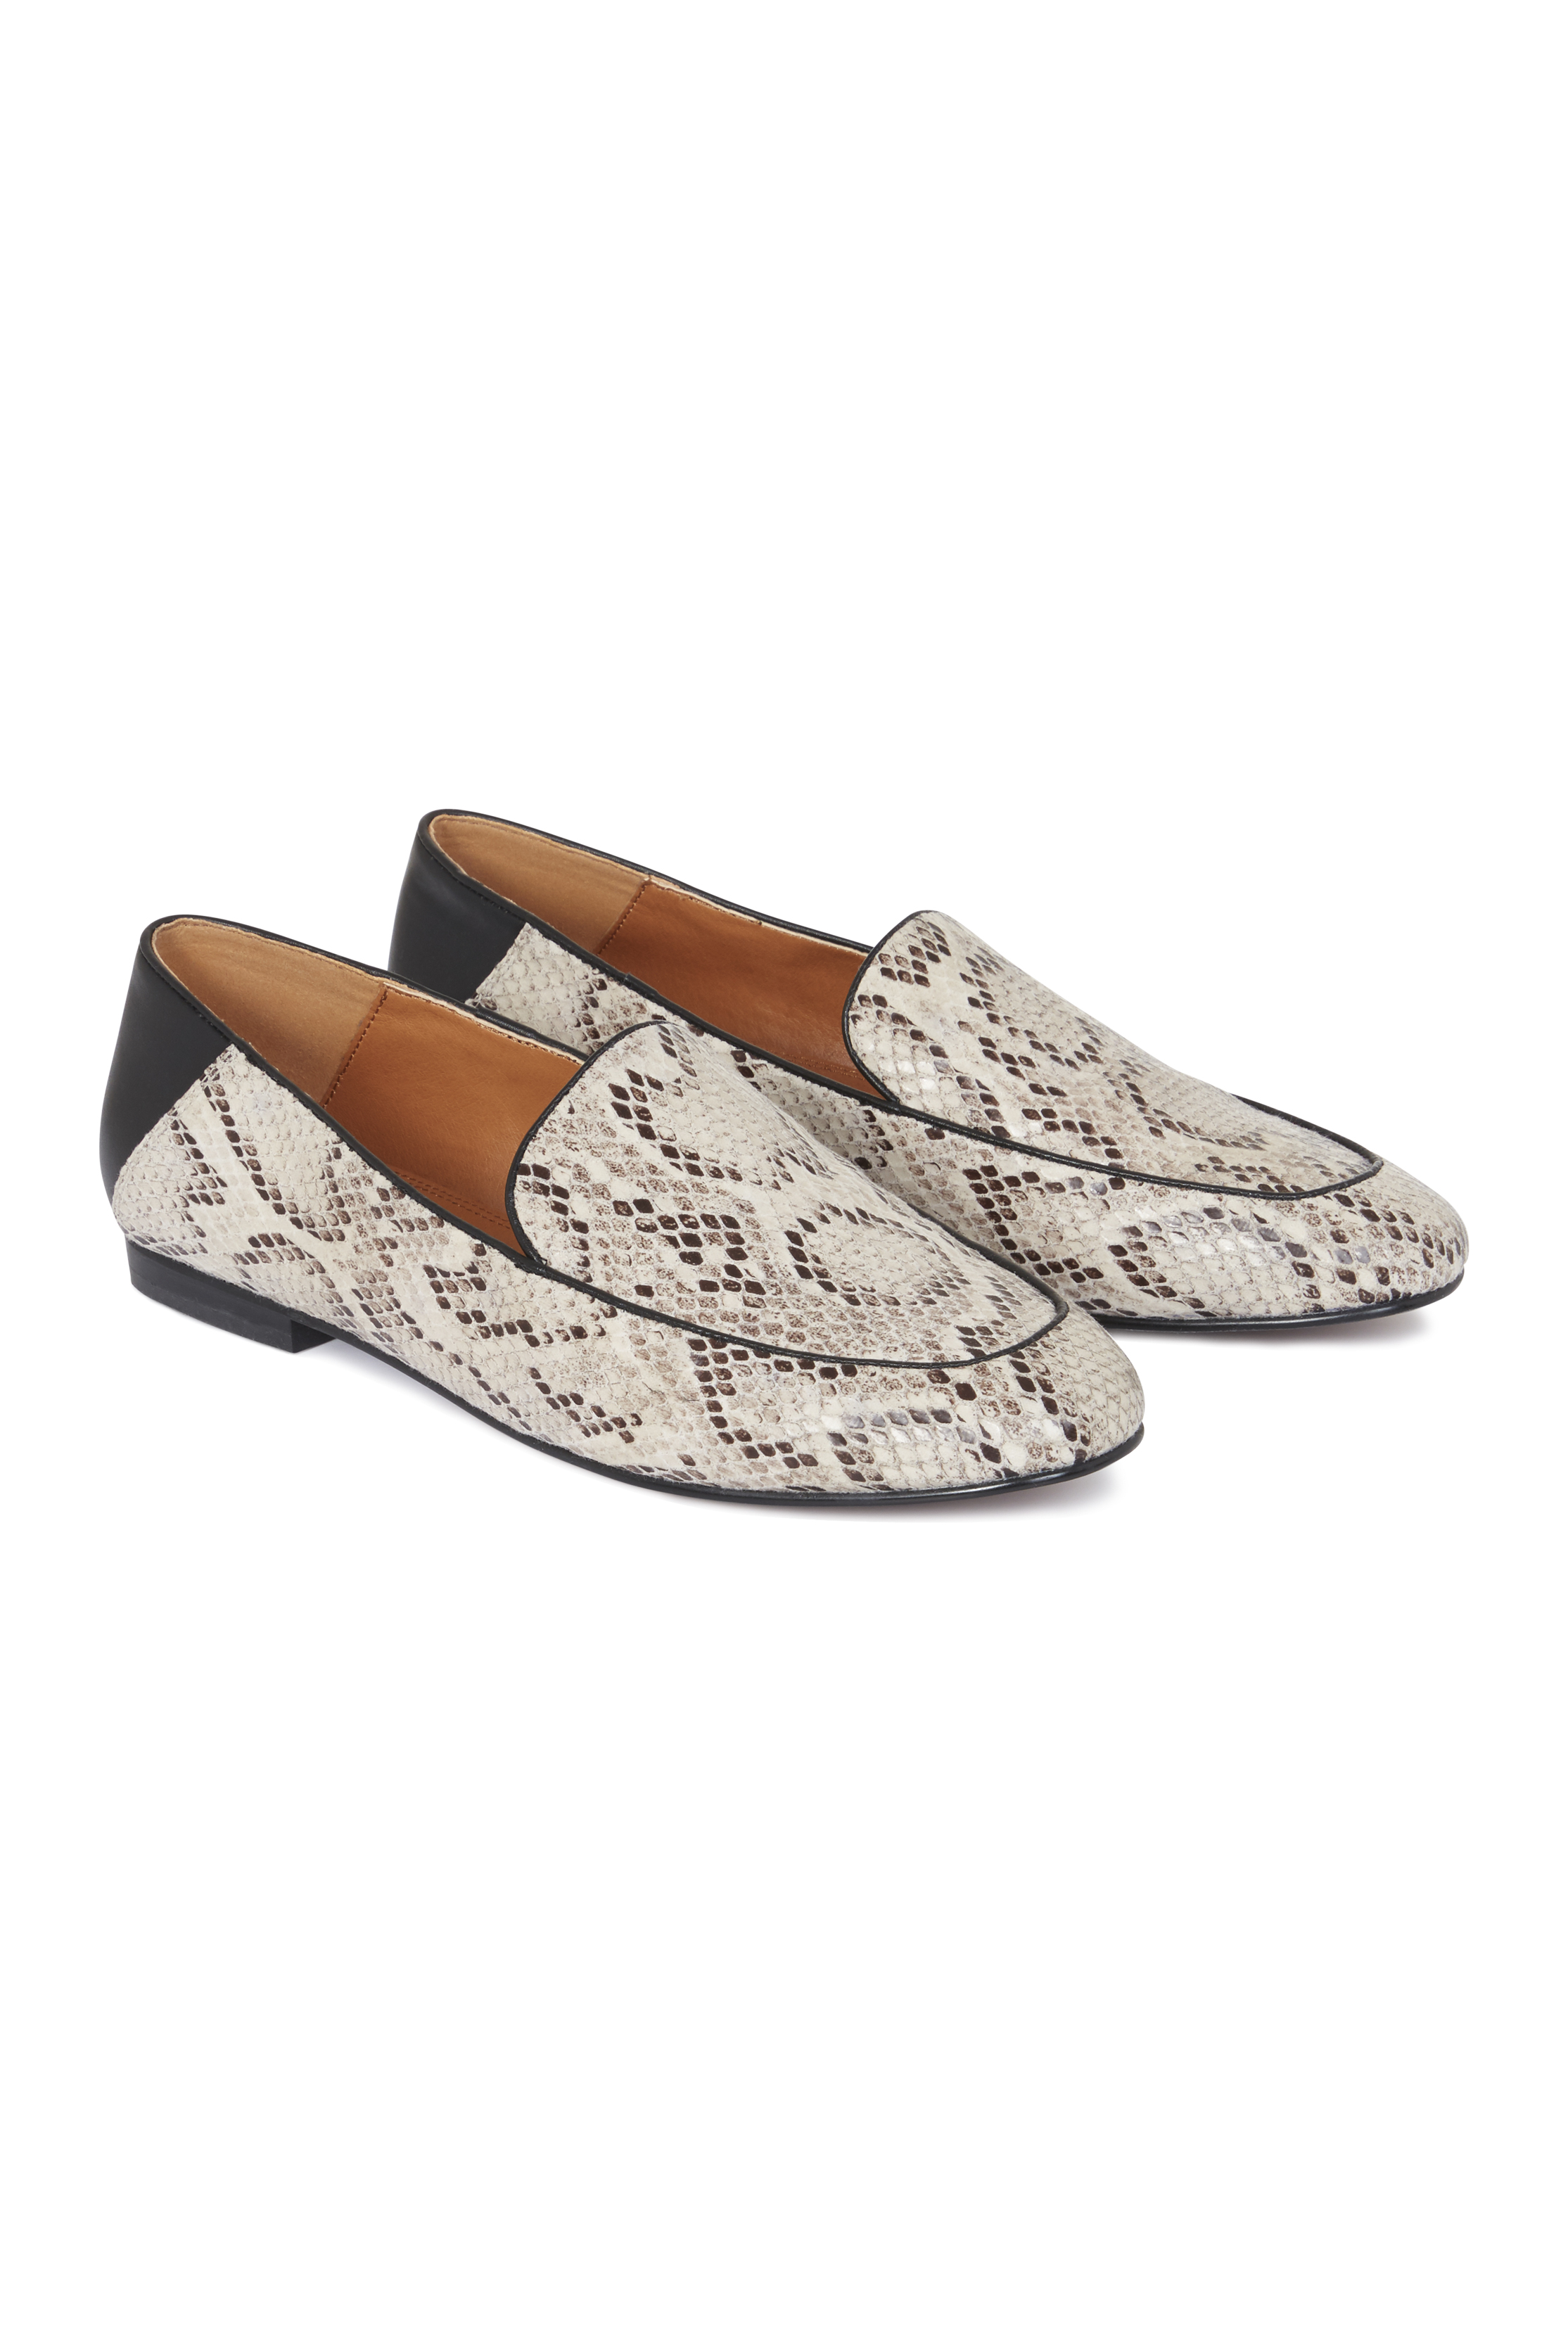 LTS Ria Loafer